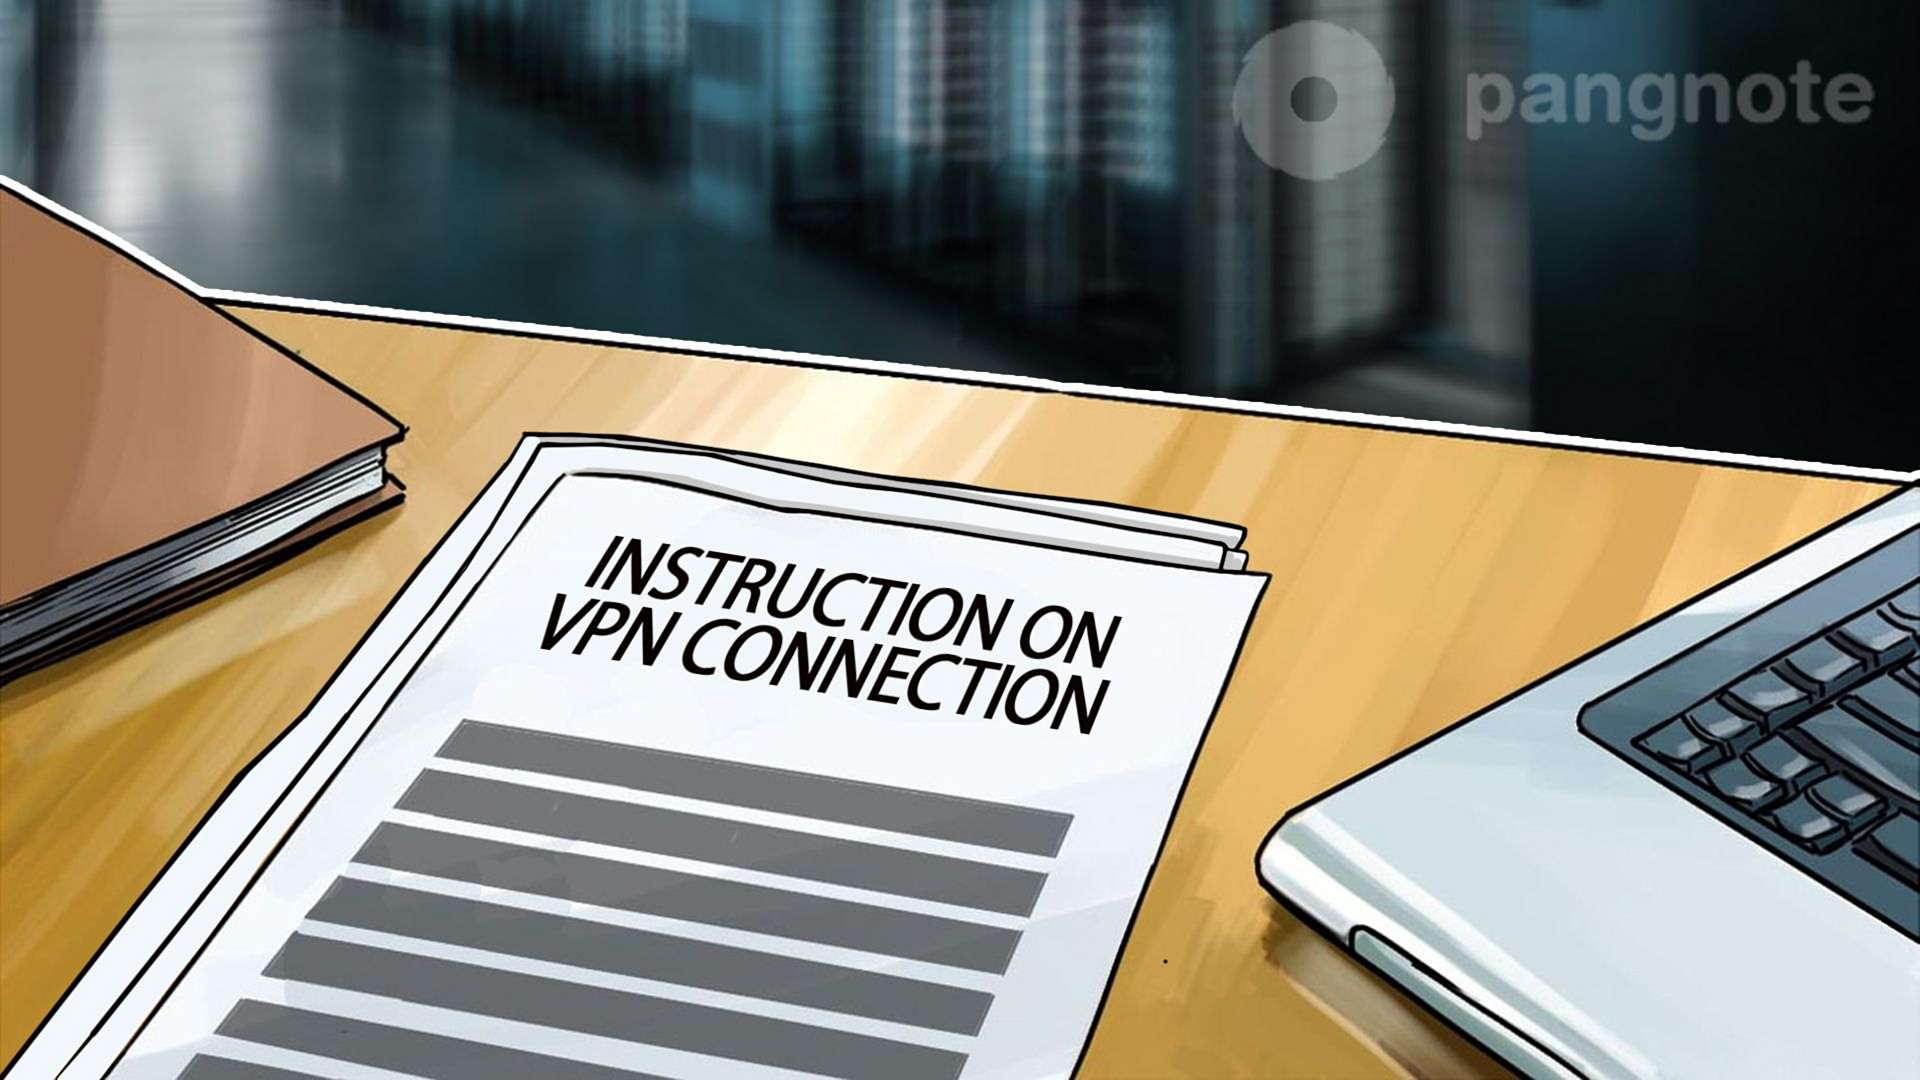 What is freeVPN connection and how to use it?